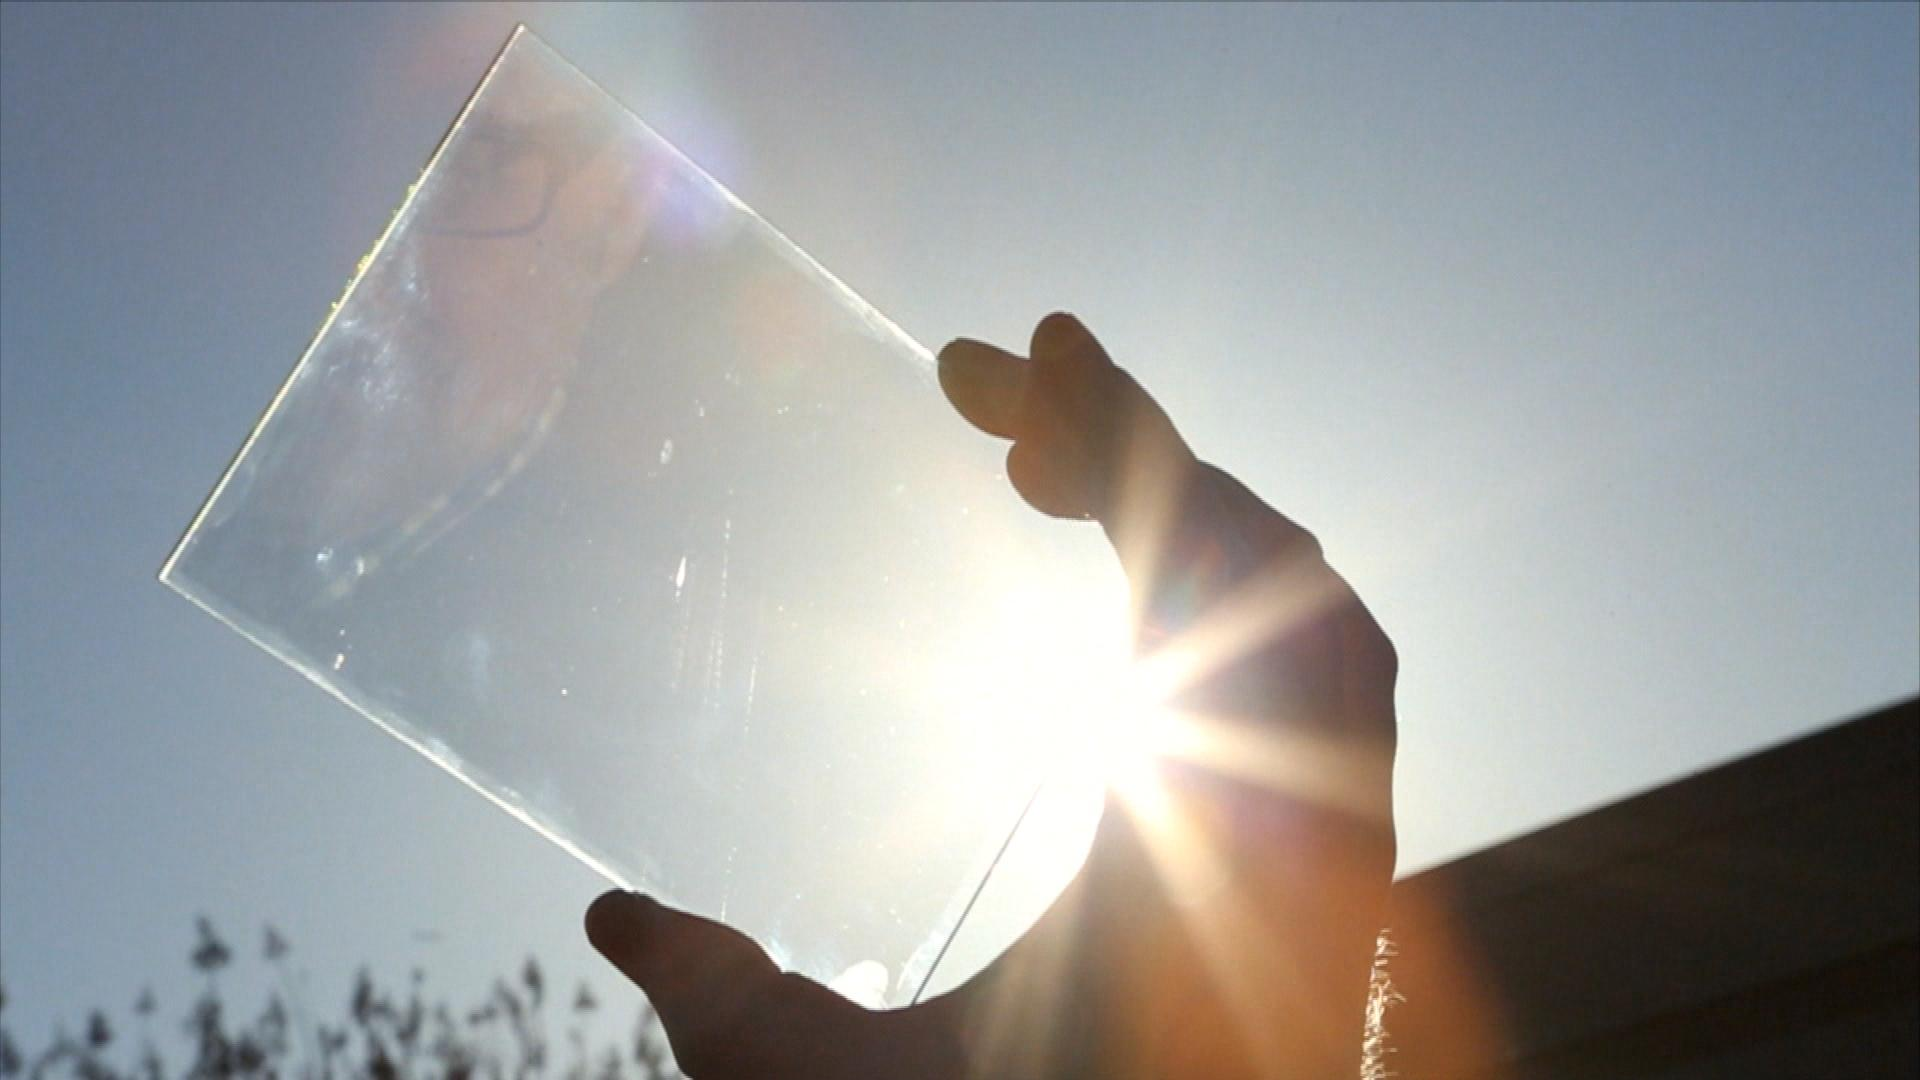 Transparent Solar Panels >> Ubiquitous Energy Invisible Solar Cells Could Power Phones Bloomberg